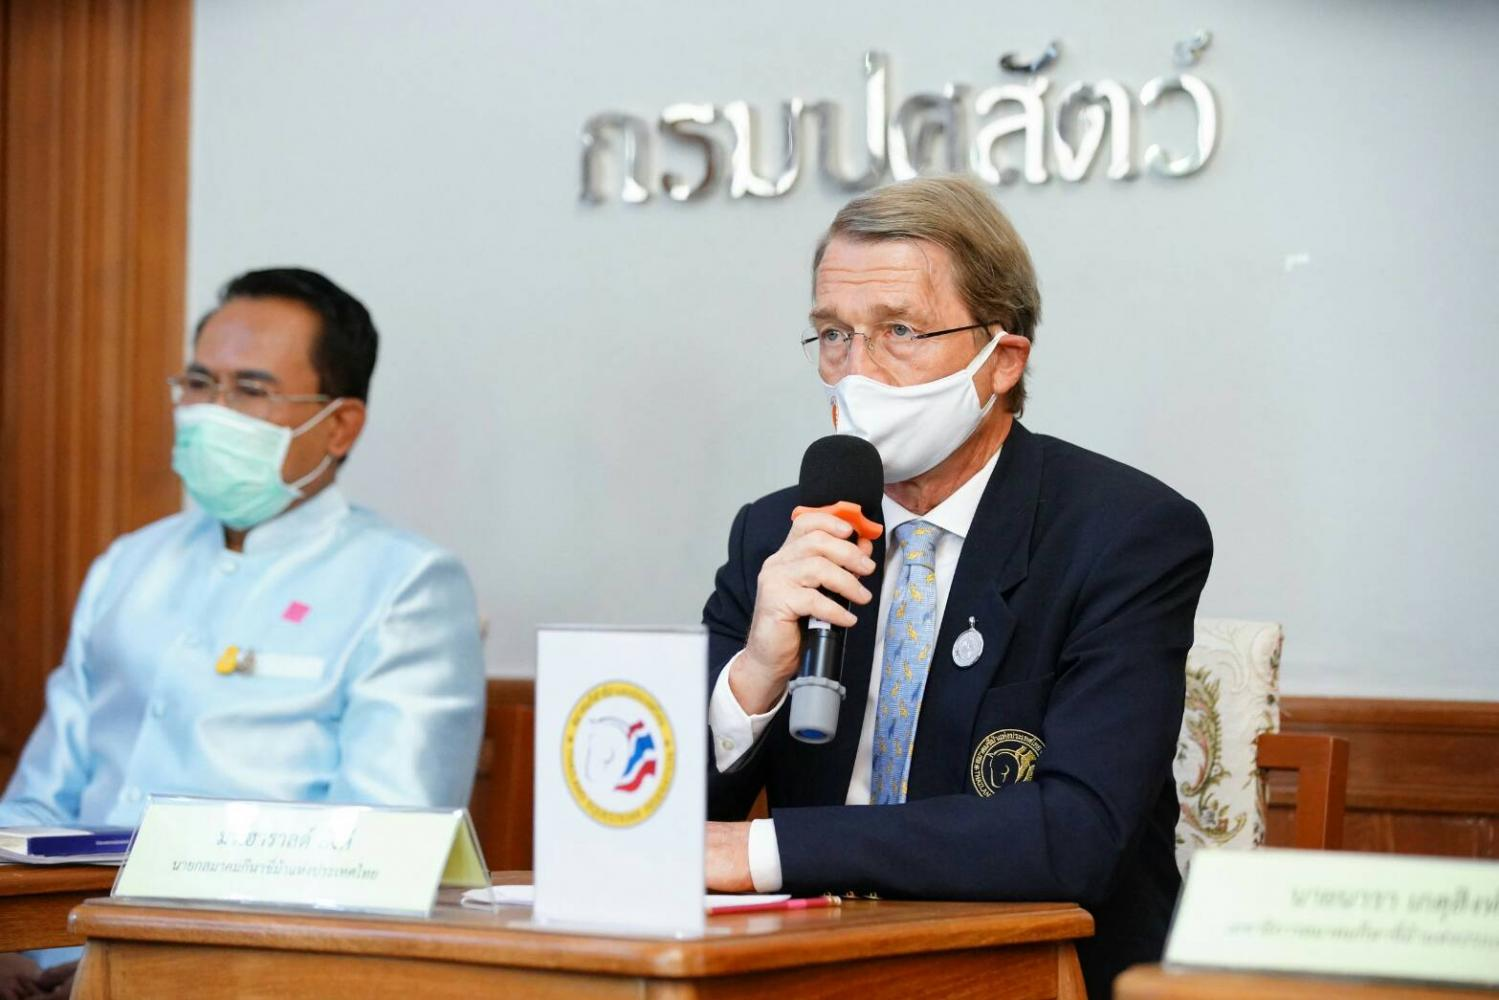 Harald Link, chairman of B.Grimm and president of the Thailand Equestrian Federation, and Sorravis Thaneto, director-general of the Department of Livestock Development, host a press conference about the African Horse Sickness (AHS) outbreak on Tuesday.Photo by The Department of Livestock Development